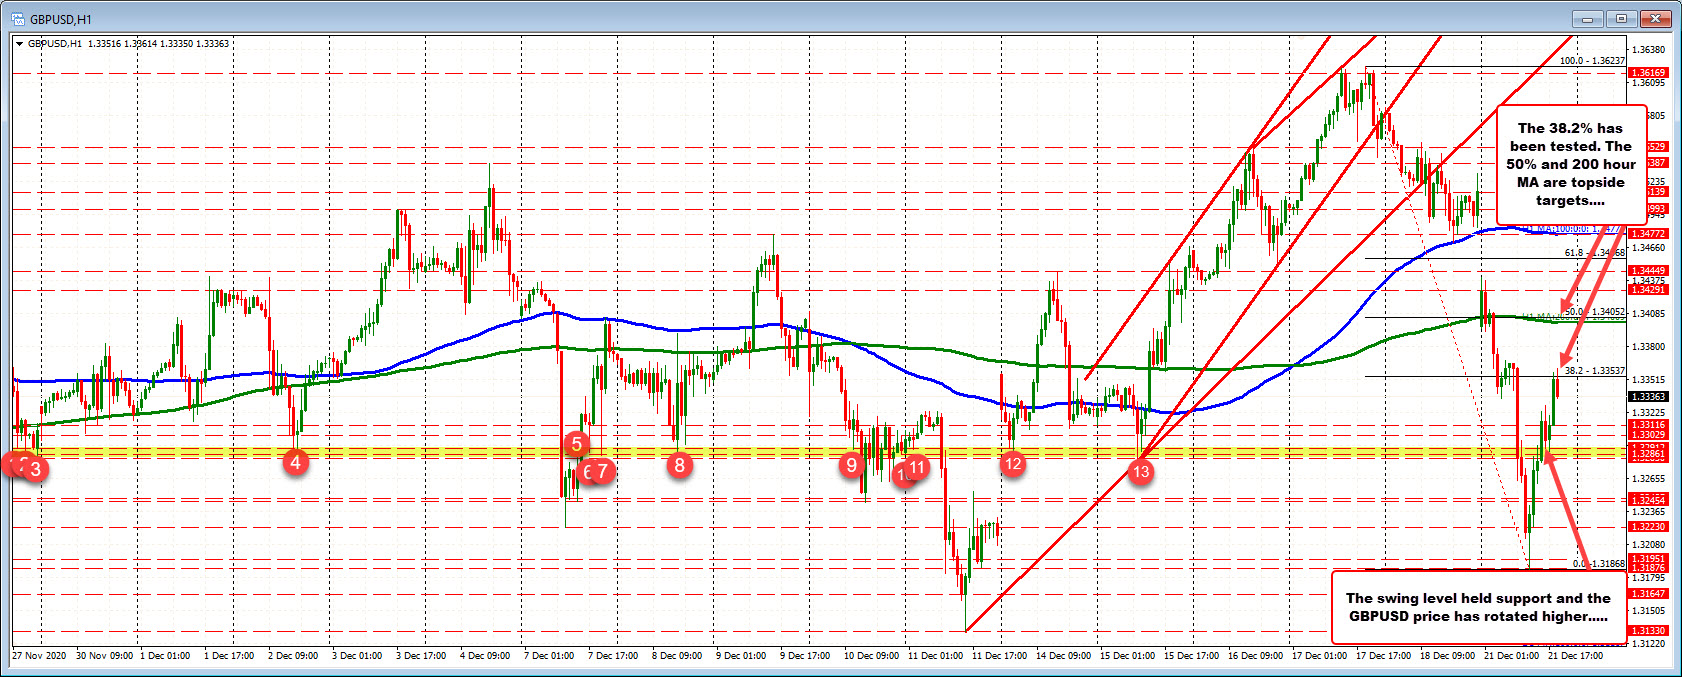 GBPUSD bounces to 38.2% retracement. Still off highs and close from Friday